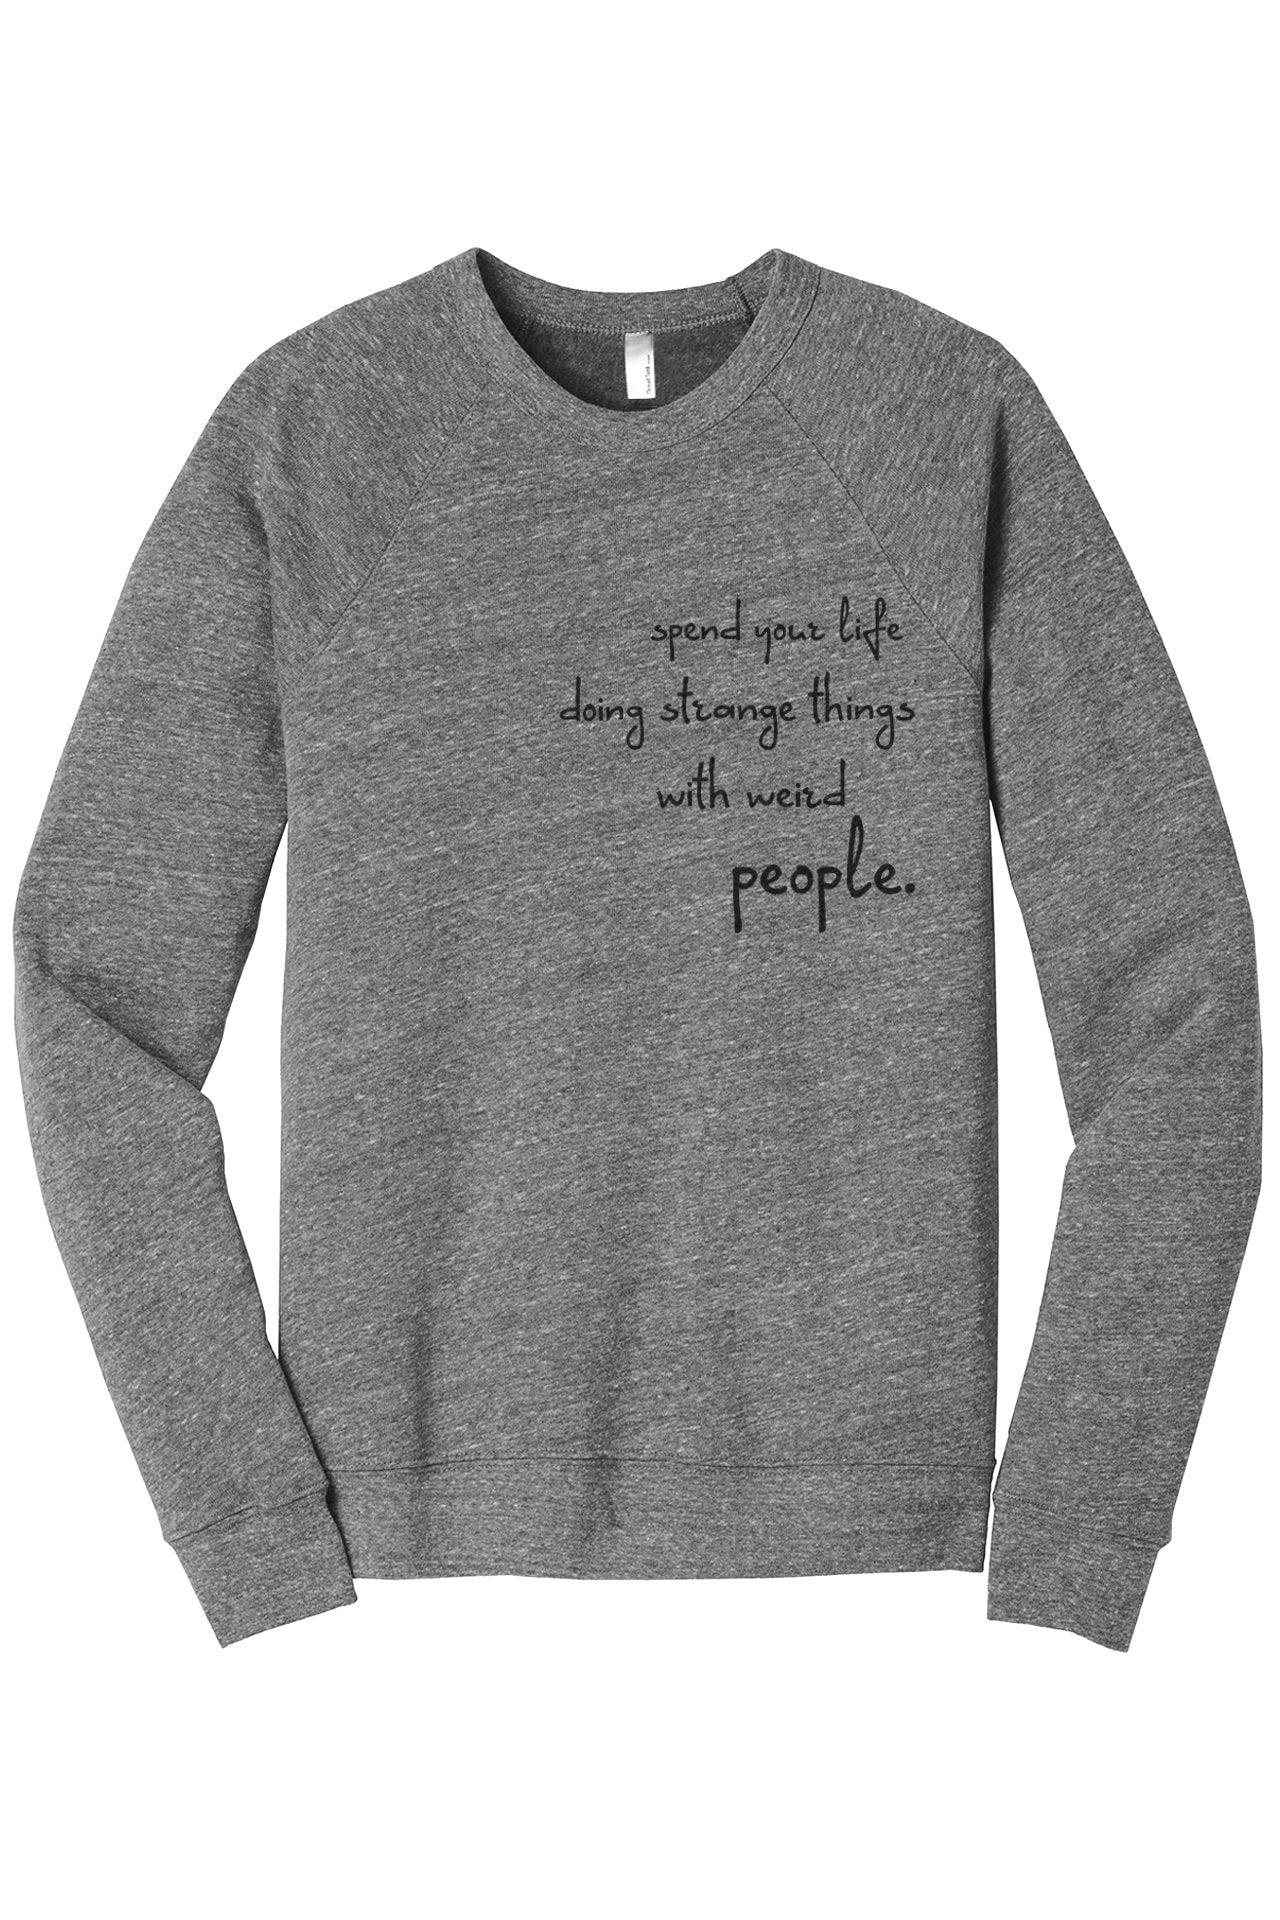 Spend Your Life Doing Strange Things With Weird People Women's Cozy Fleece Longsleeves Sweater Heather Grey FRONT